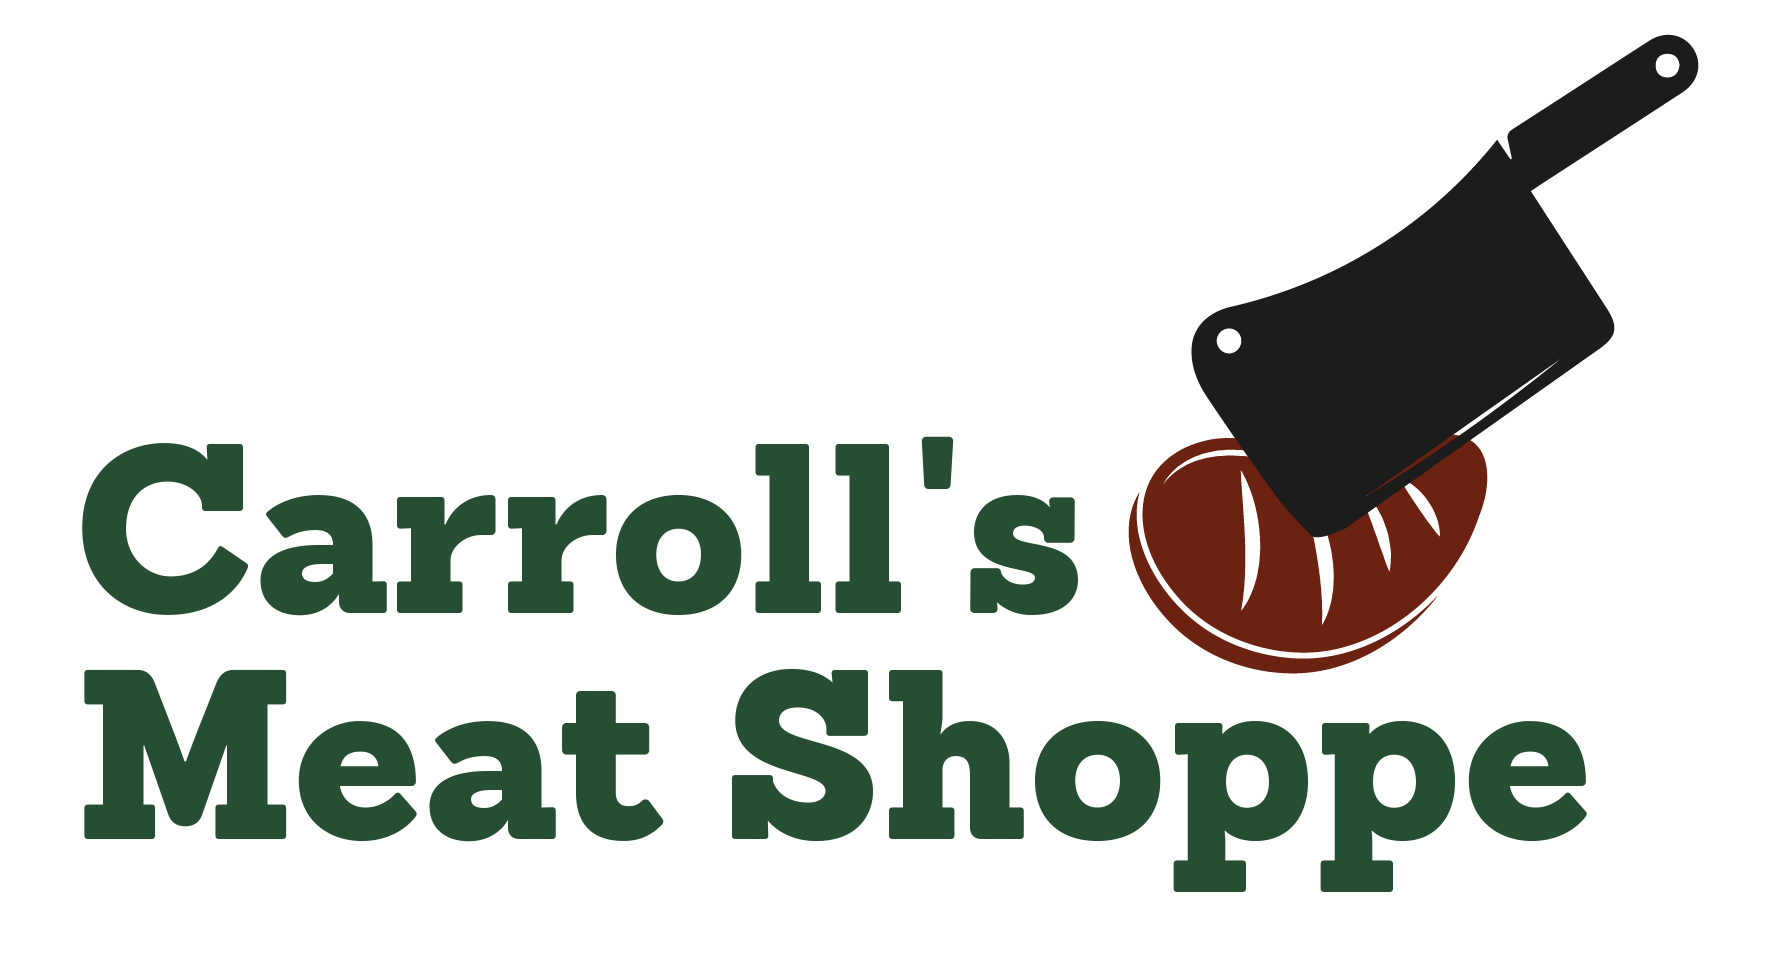 Carroll's Meat Shoppe